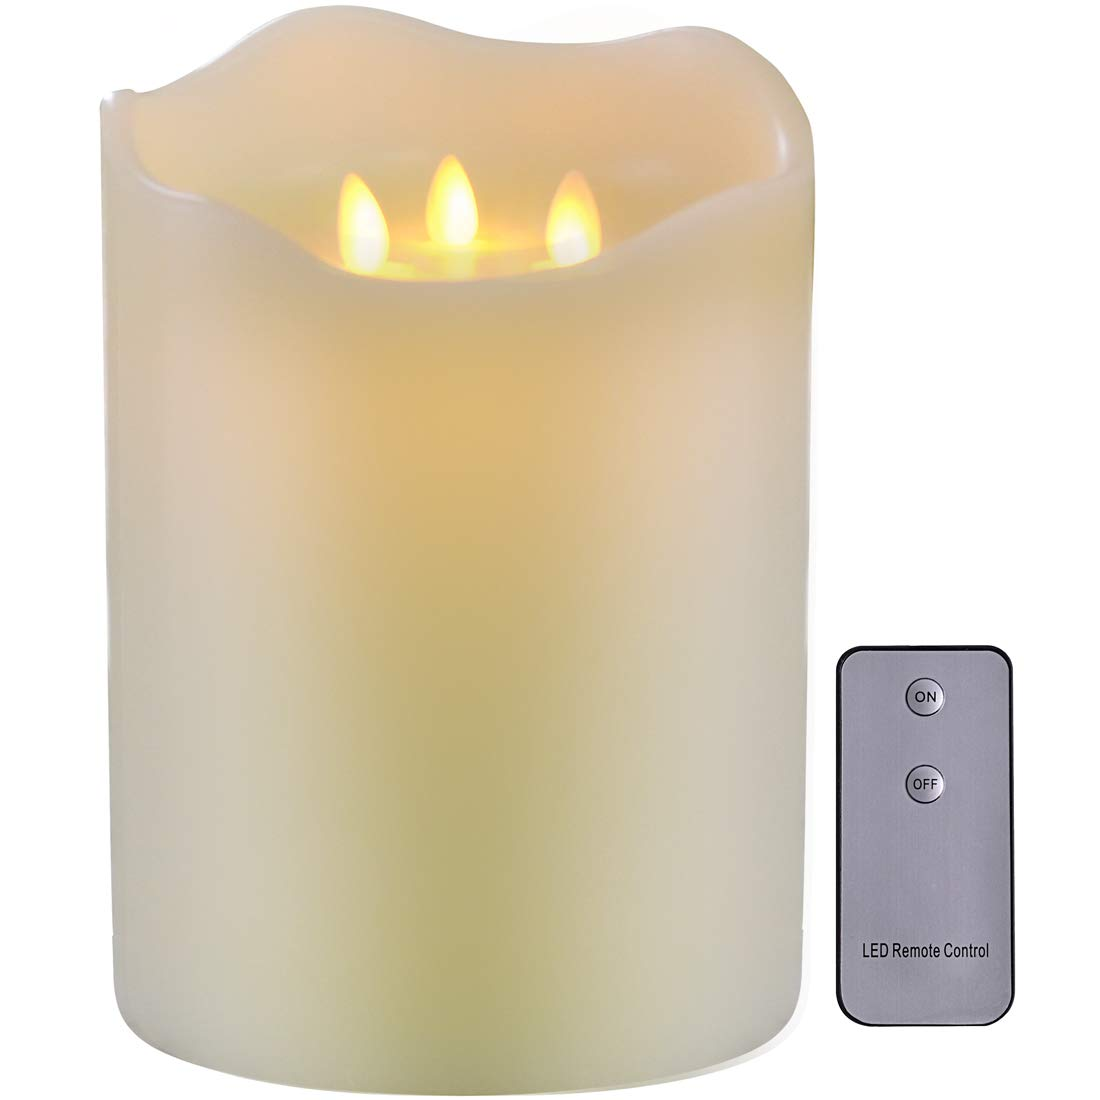 TELOSMA 3-Moving Wicks Large Candles, Flameless with Timer and Remote, Battery Operated for Home Dinner Table Bookshelf Room Wedding Decor - 9 inch Ivory